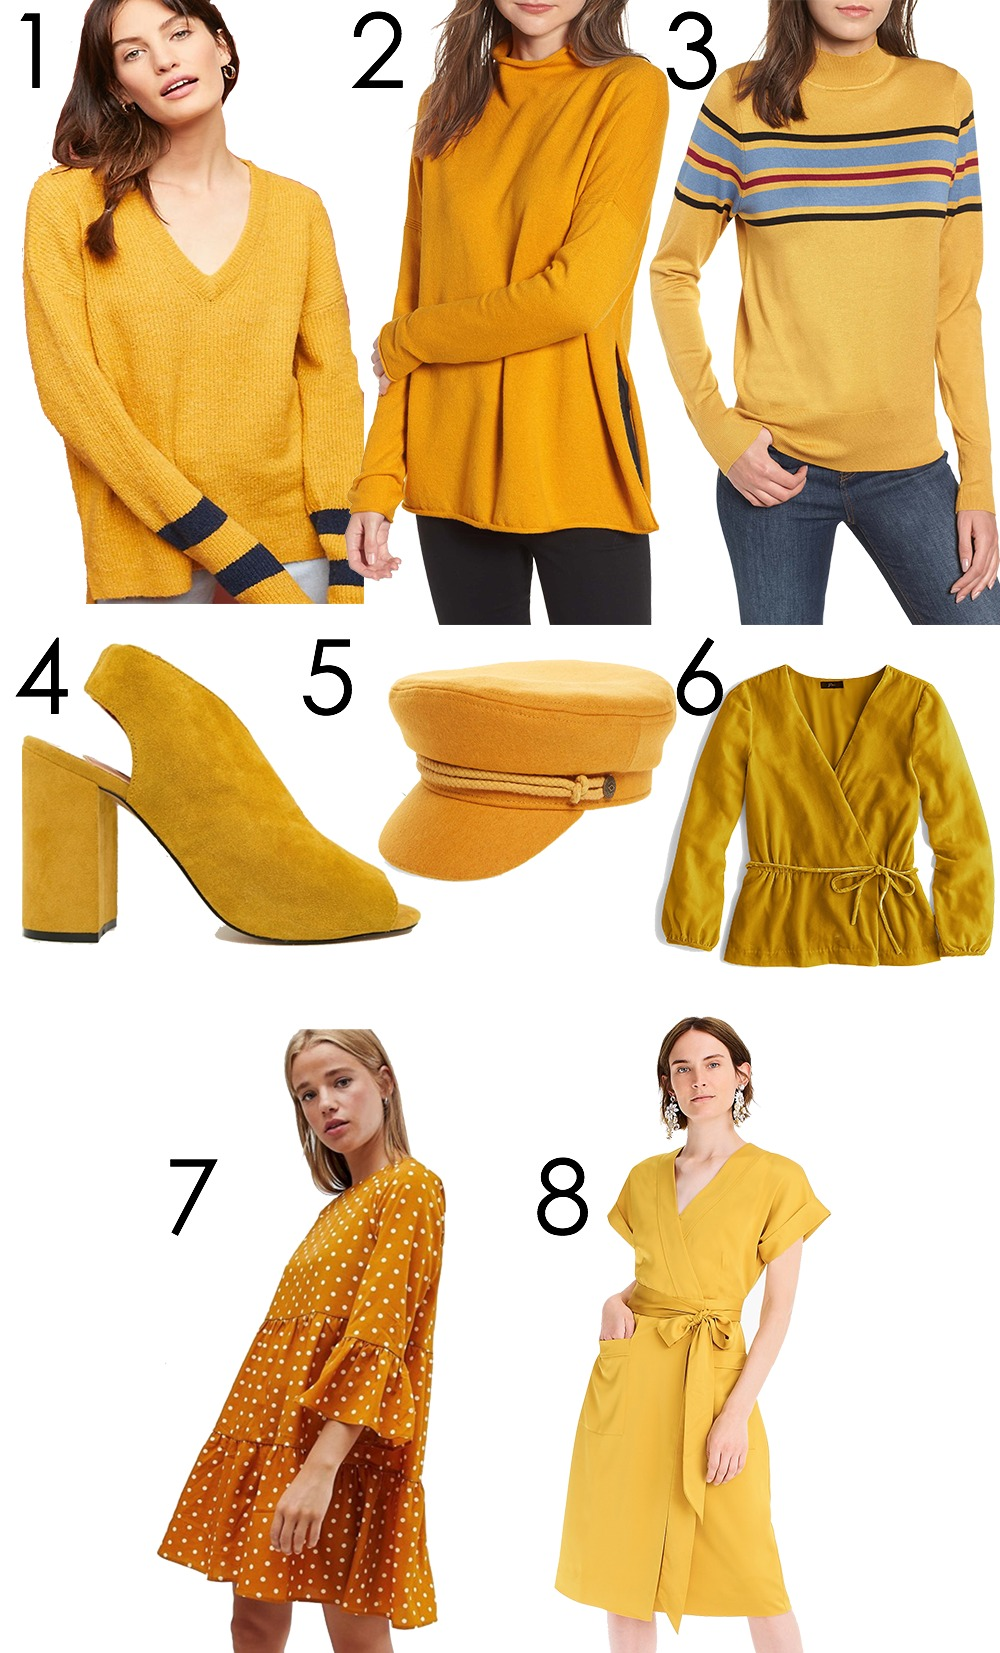 Yellow Fall Fashion Trend Picks for Your Wardrobe I DreaminLace.com #FallFashion #FallTrends #Style